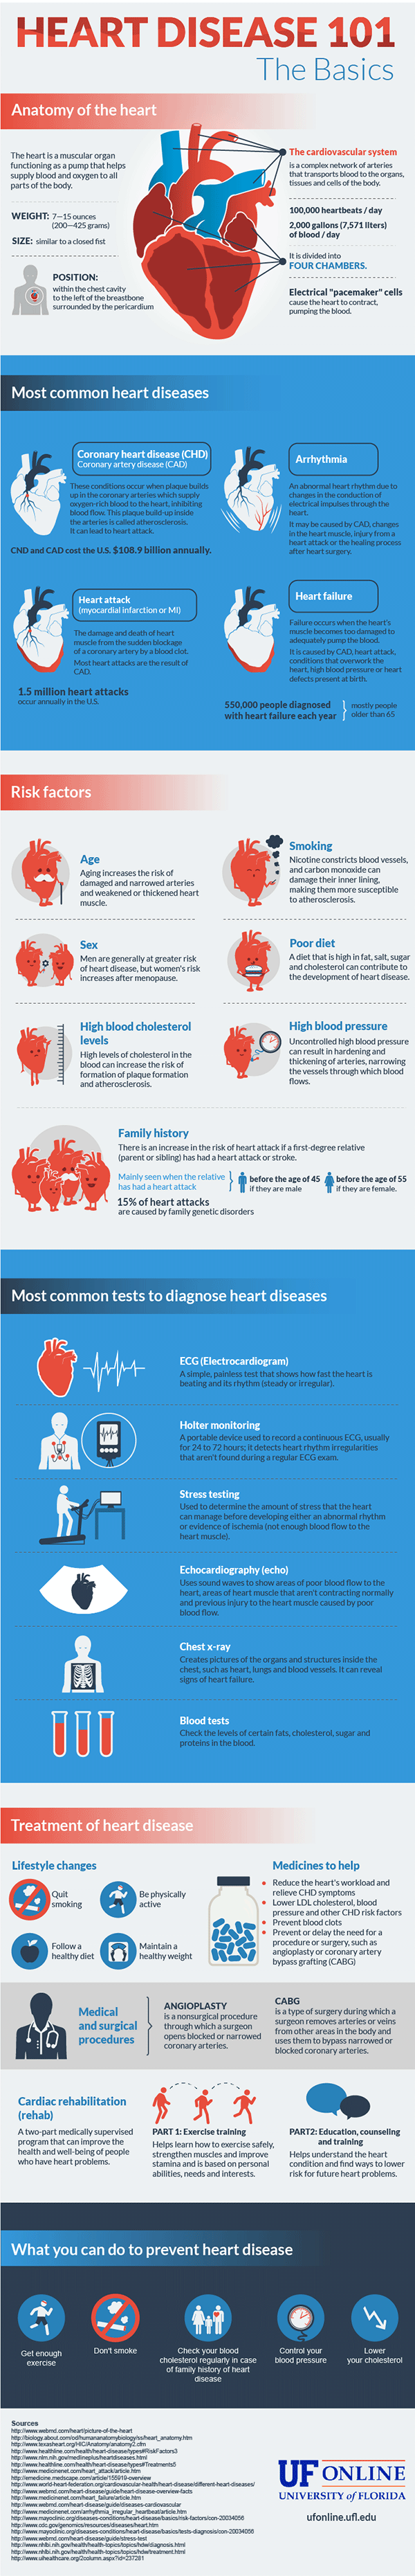 UF Online Infographic: Heart Disease 101: The Basics